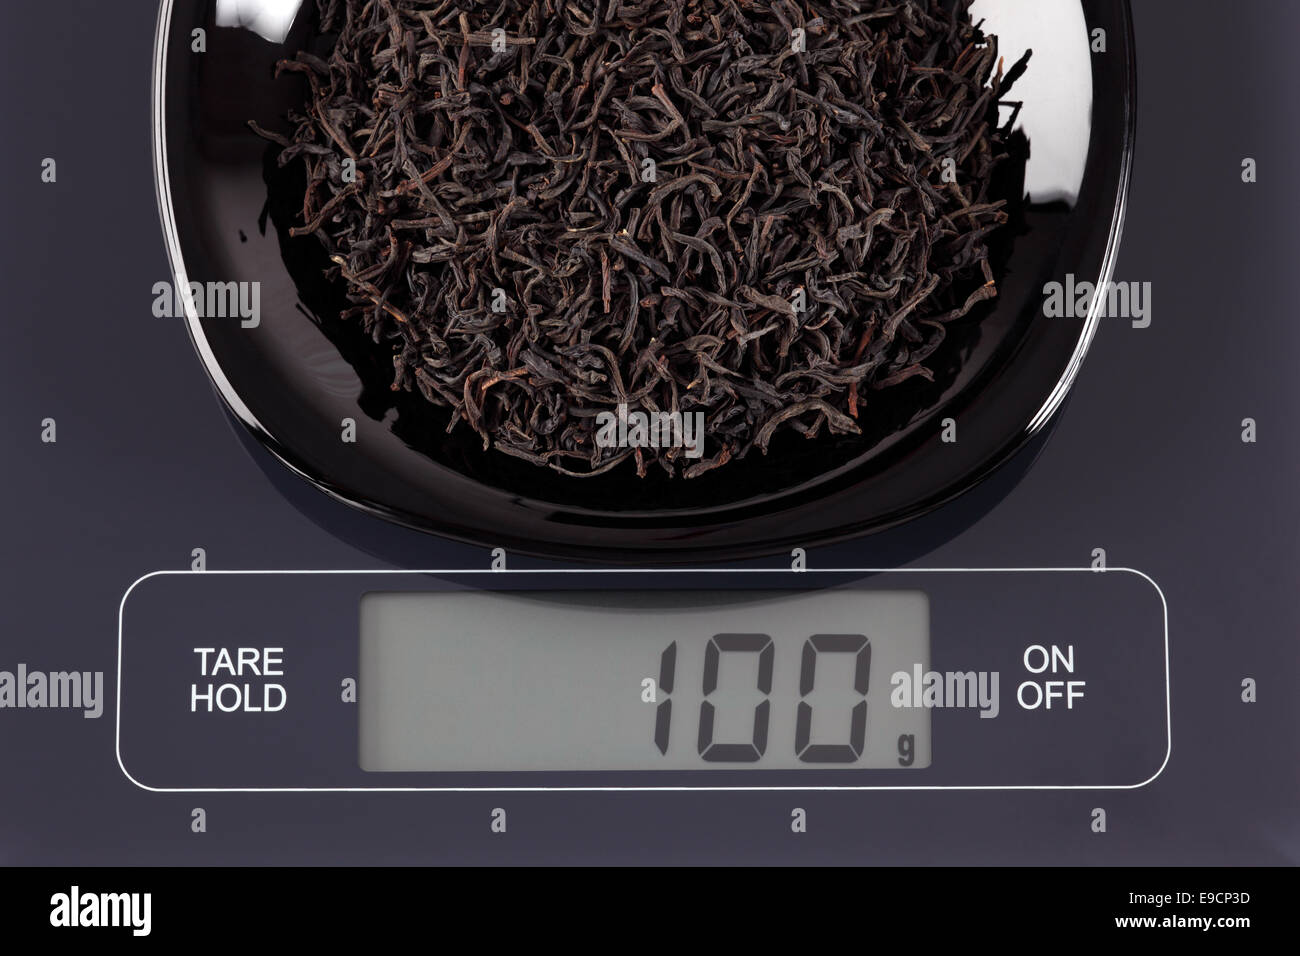 Black tea leaves in a black plate on digital scale displaying 100 gramme. Stock Photo